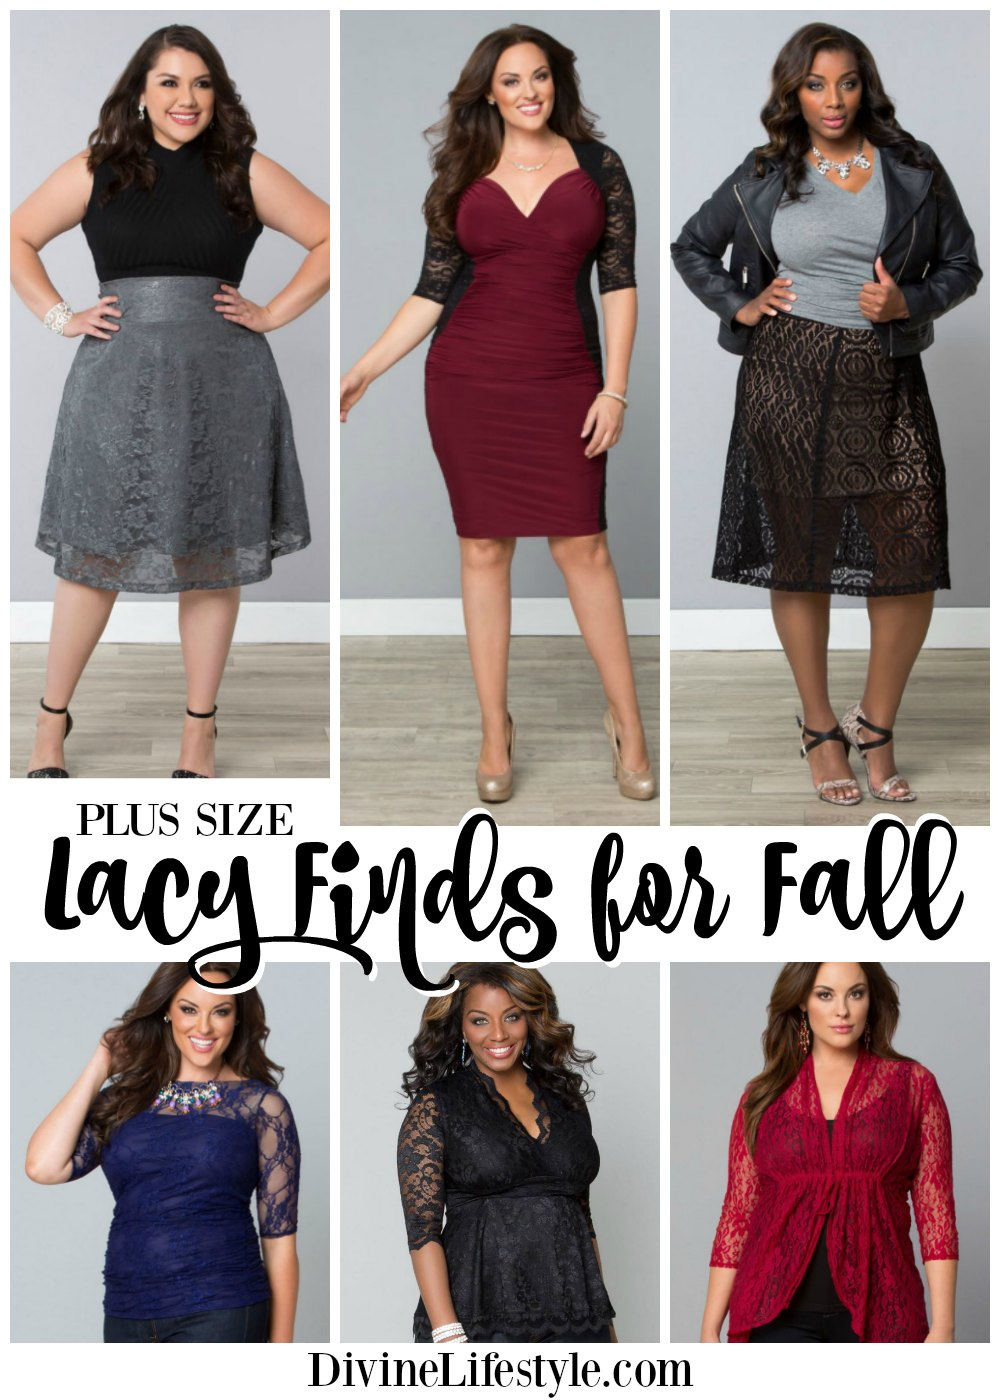 Plus Size Maxi Dresses For Weddings 75 Beautiful Plus Size Lacy Finds